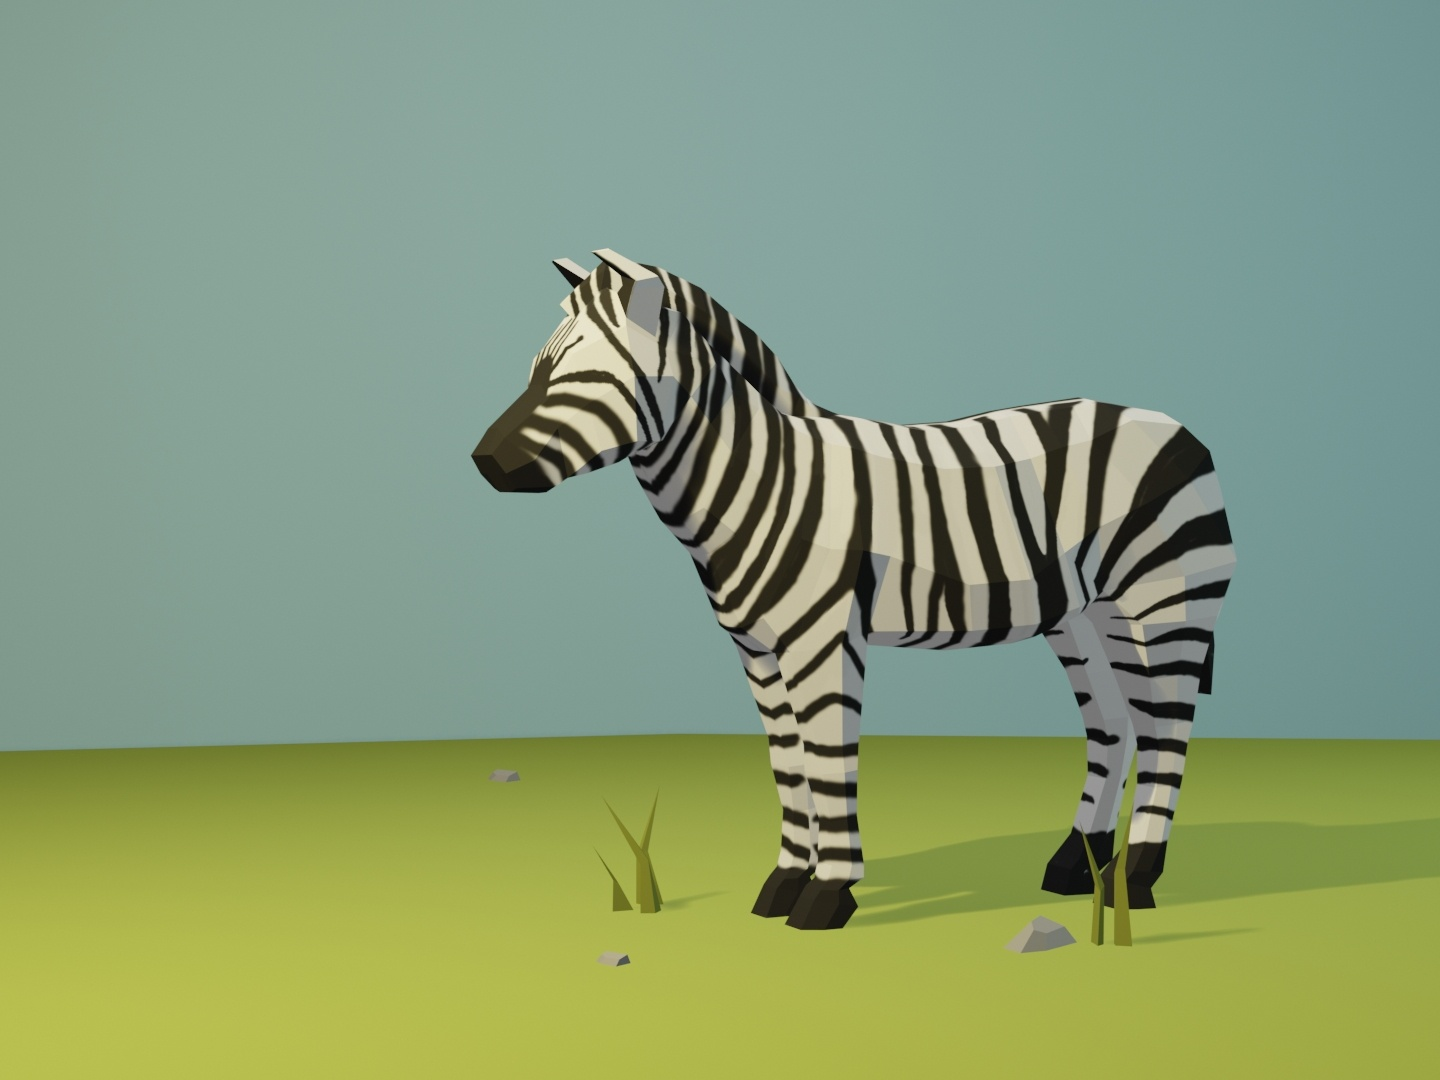 Low Poly Zebra by Amanda Wang on Dribbble